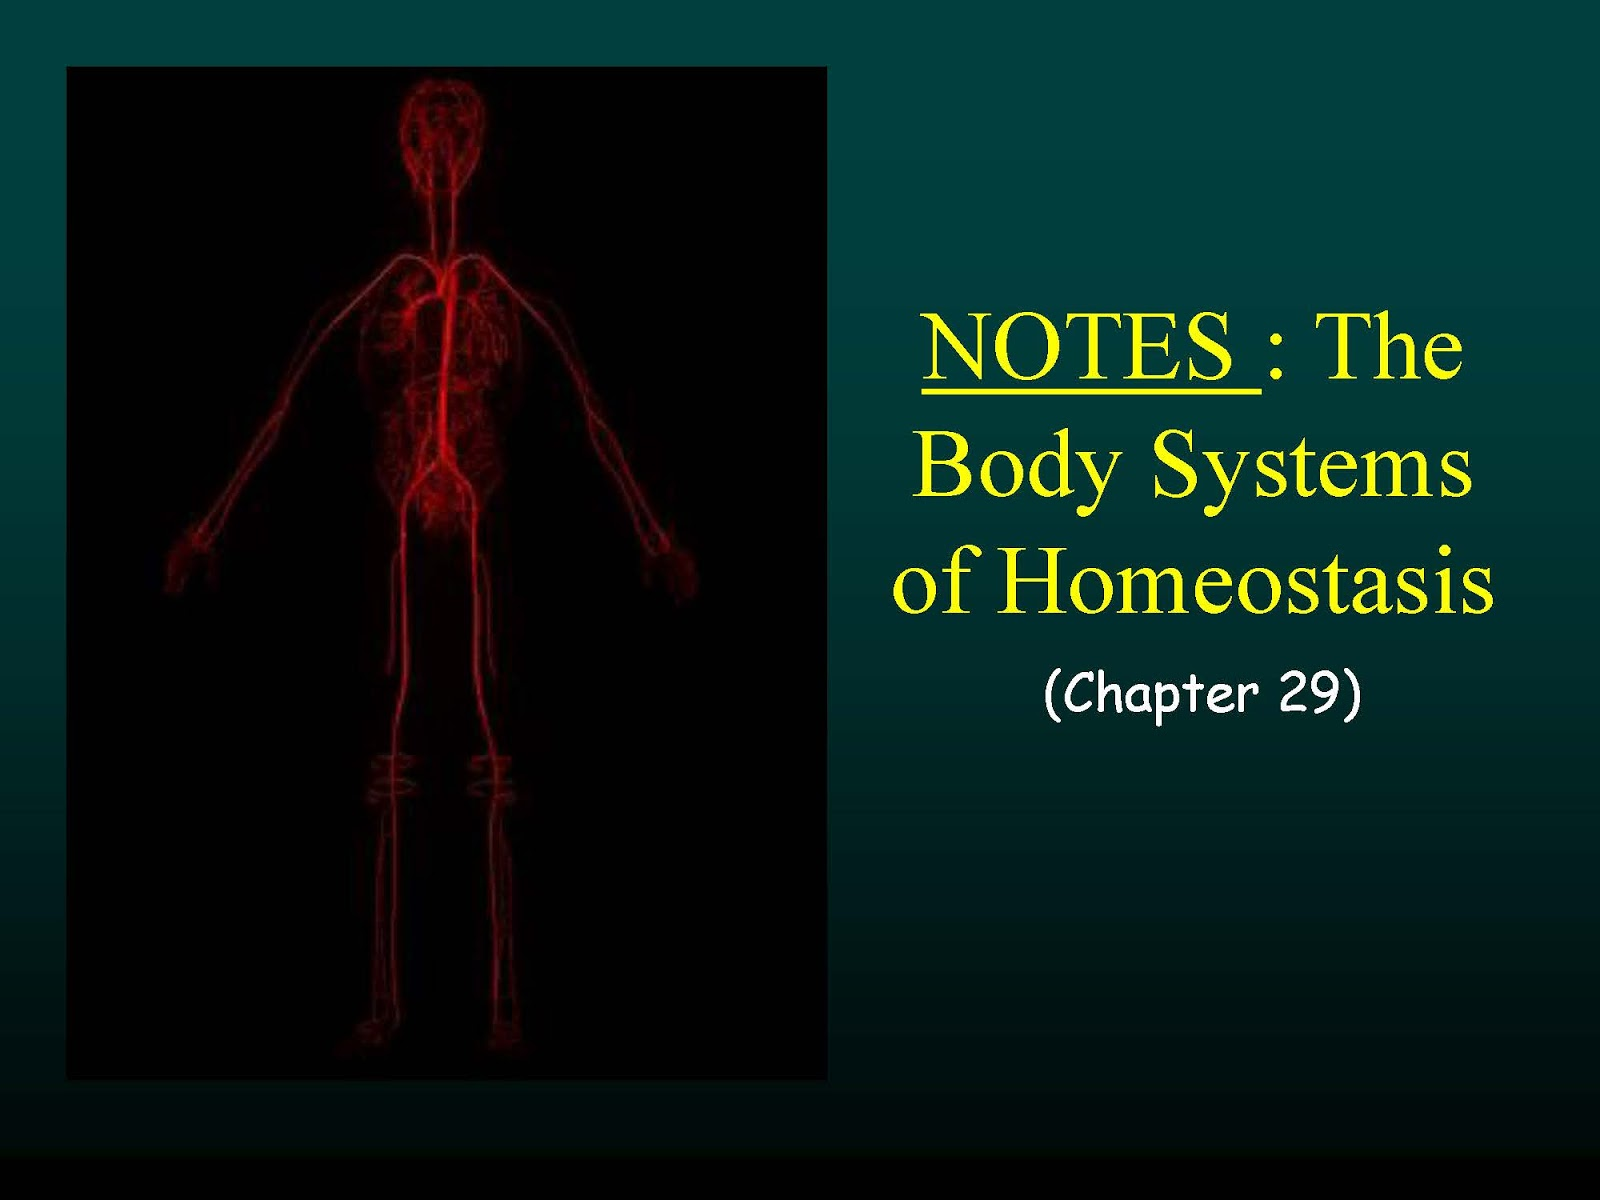 The Human Body Systems of Homeostasis 1600x1200